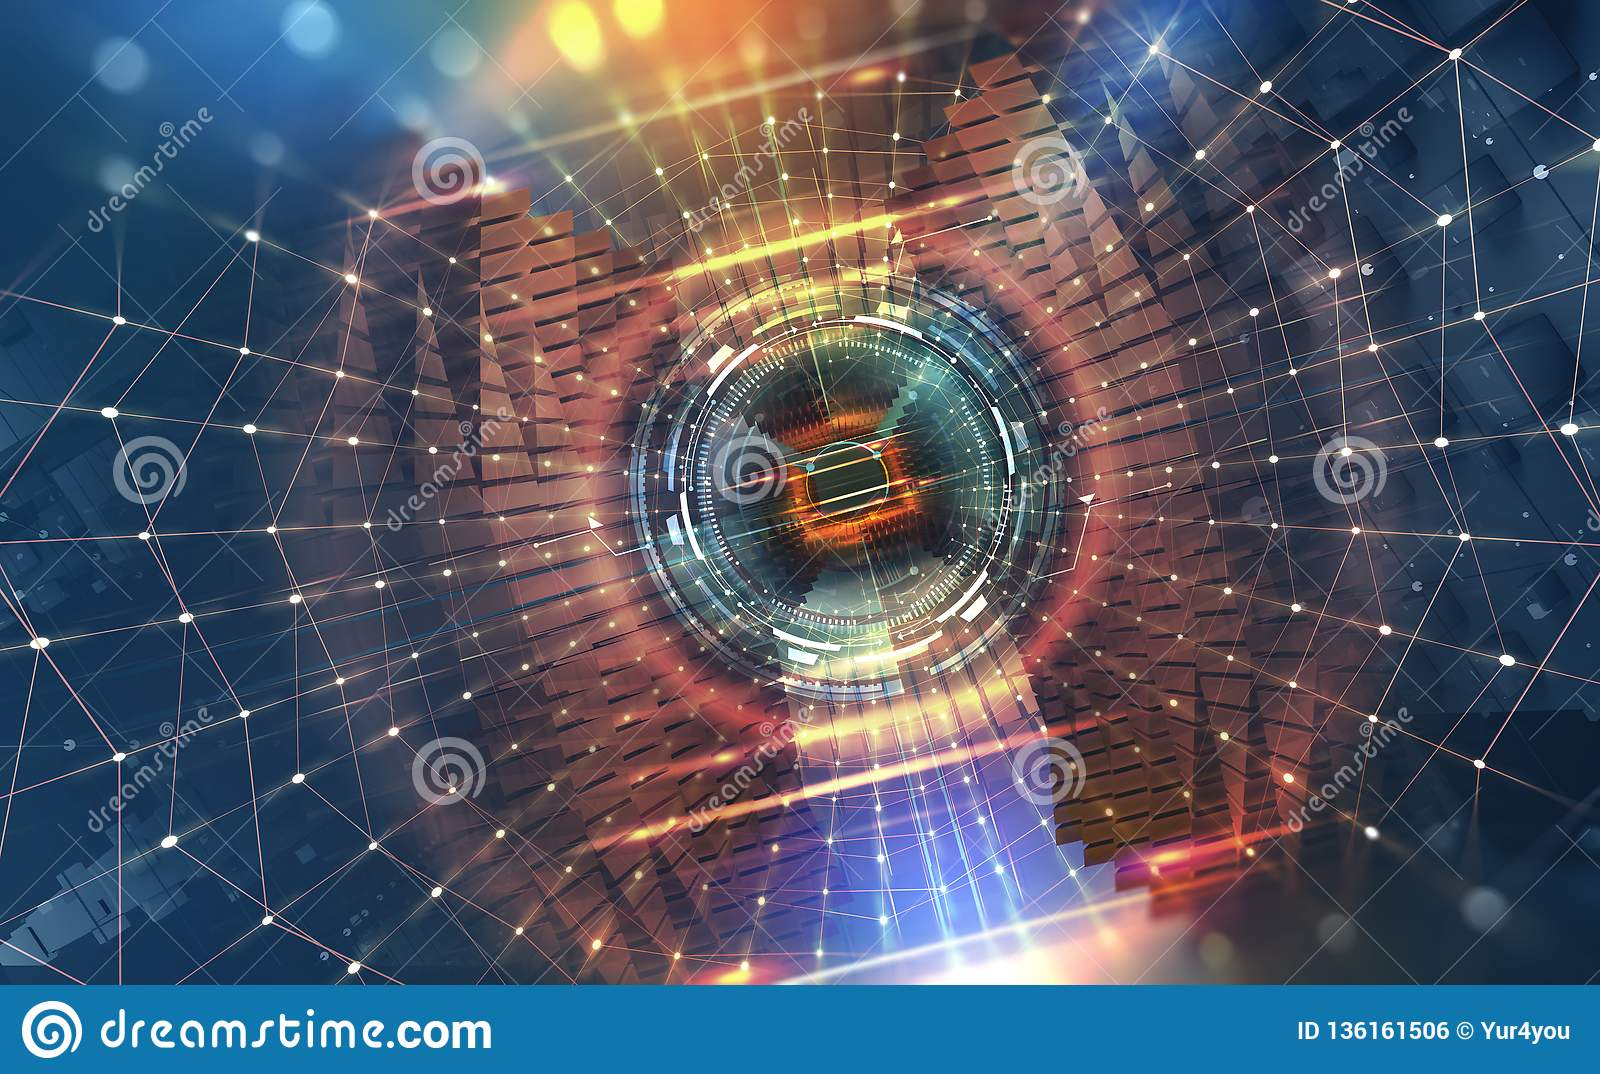 https://thumbs.dreamstime.com/z/big-data-concept-flow-digital-global-network-quantum-computer-speed-portal-hadron-collider-abstract-d-illustration-136161506.jpg